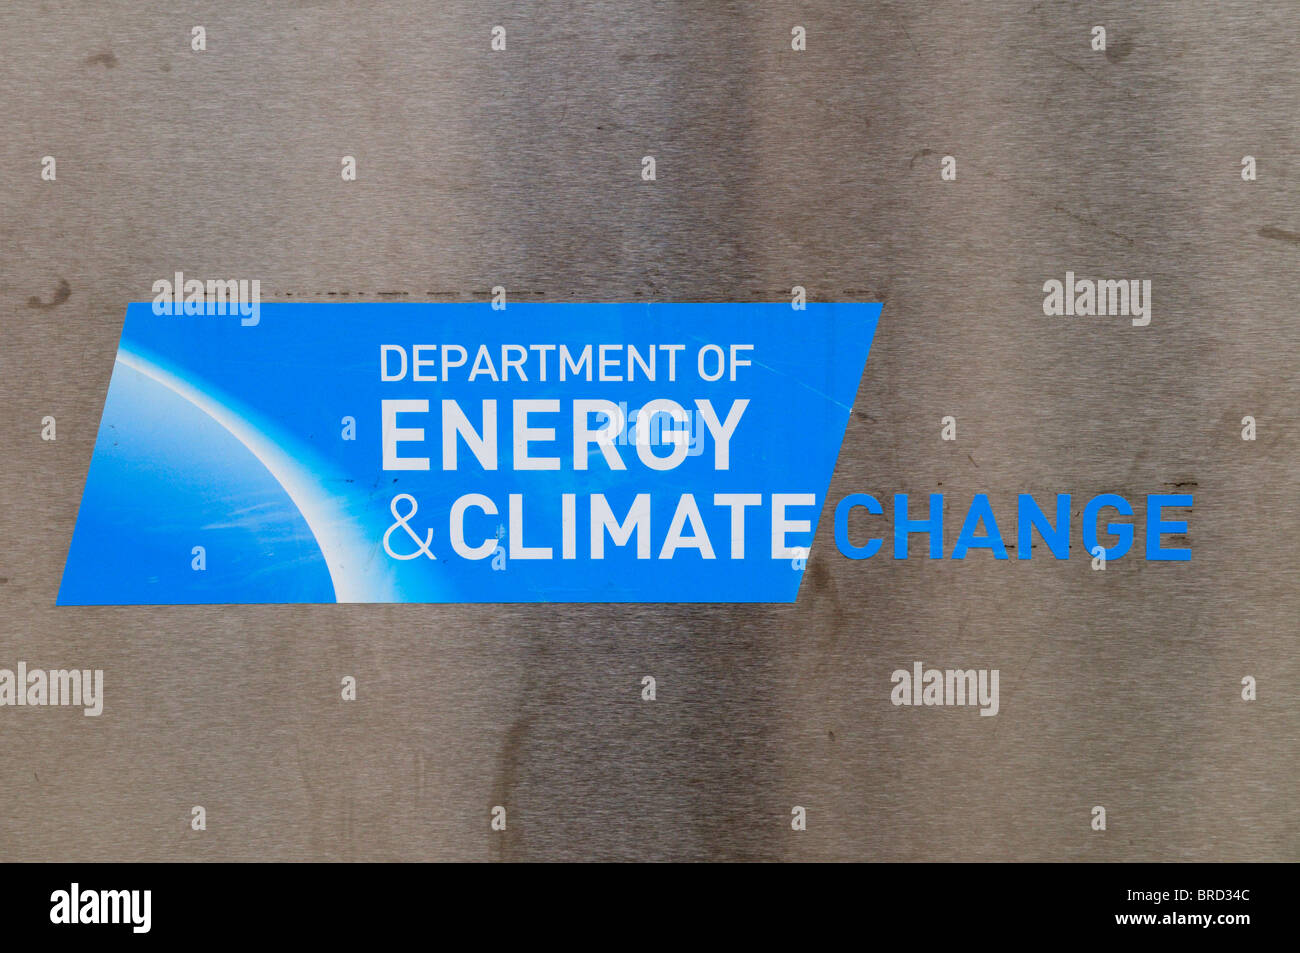 Department of Energy and Climate Change Sign, Whitehall Place, London, England, UK - Stock Image